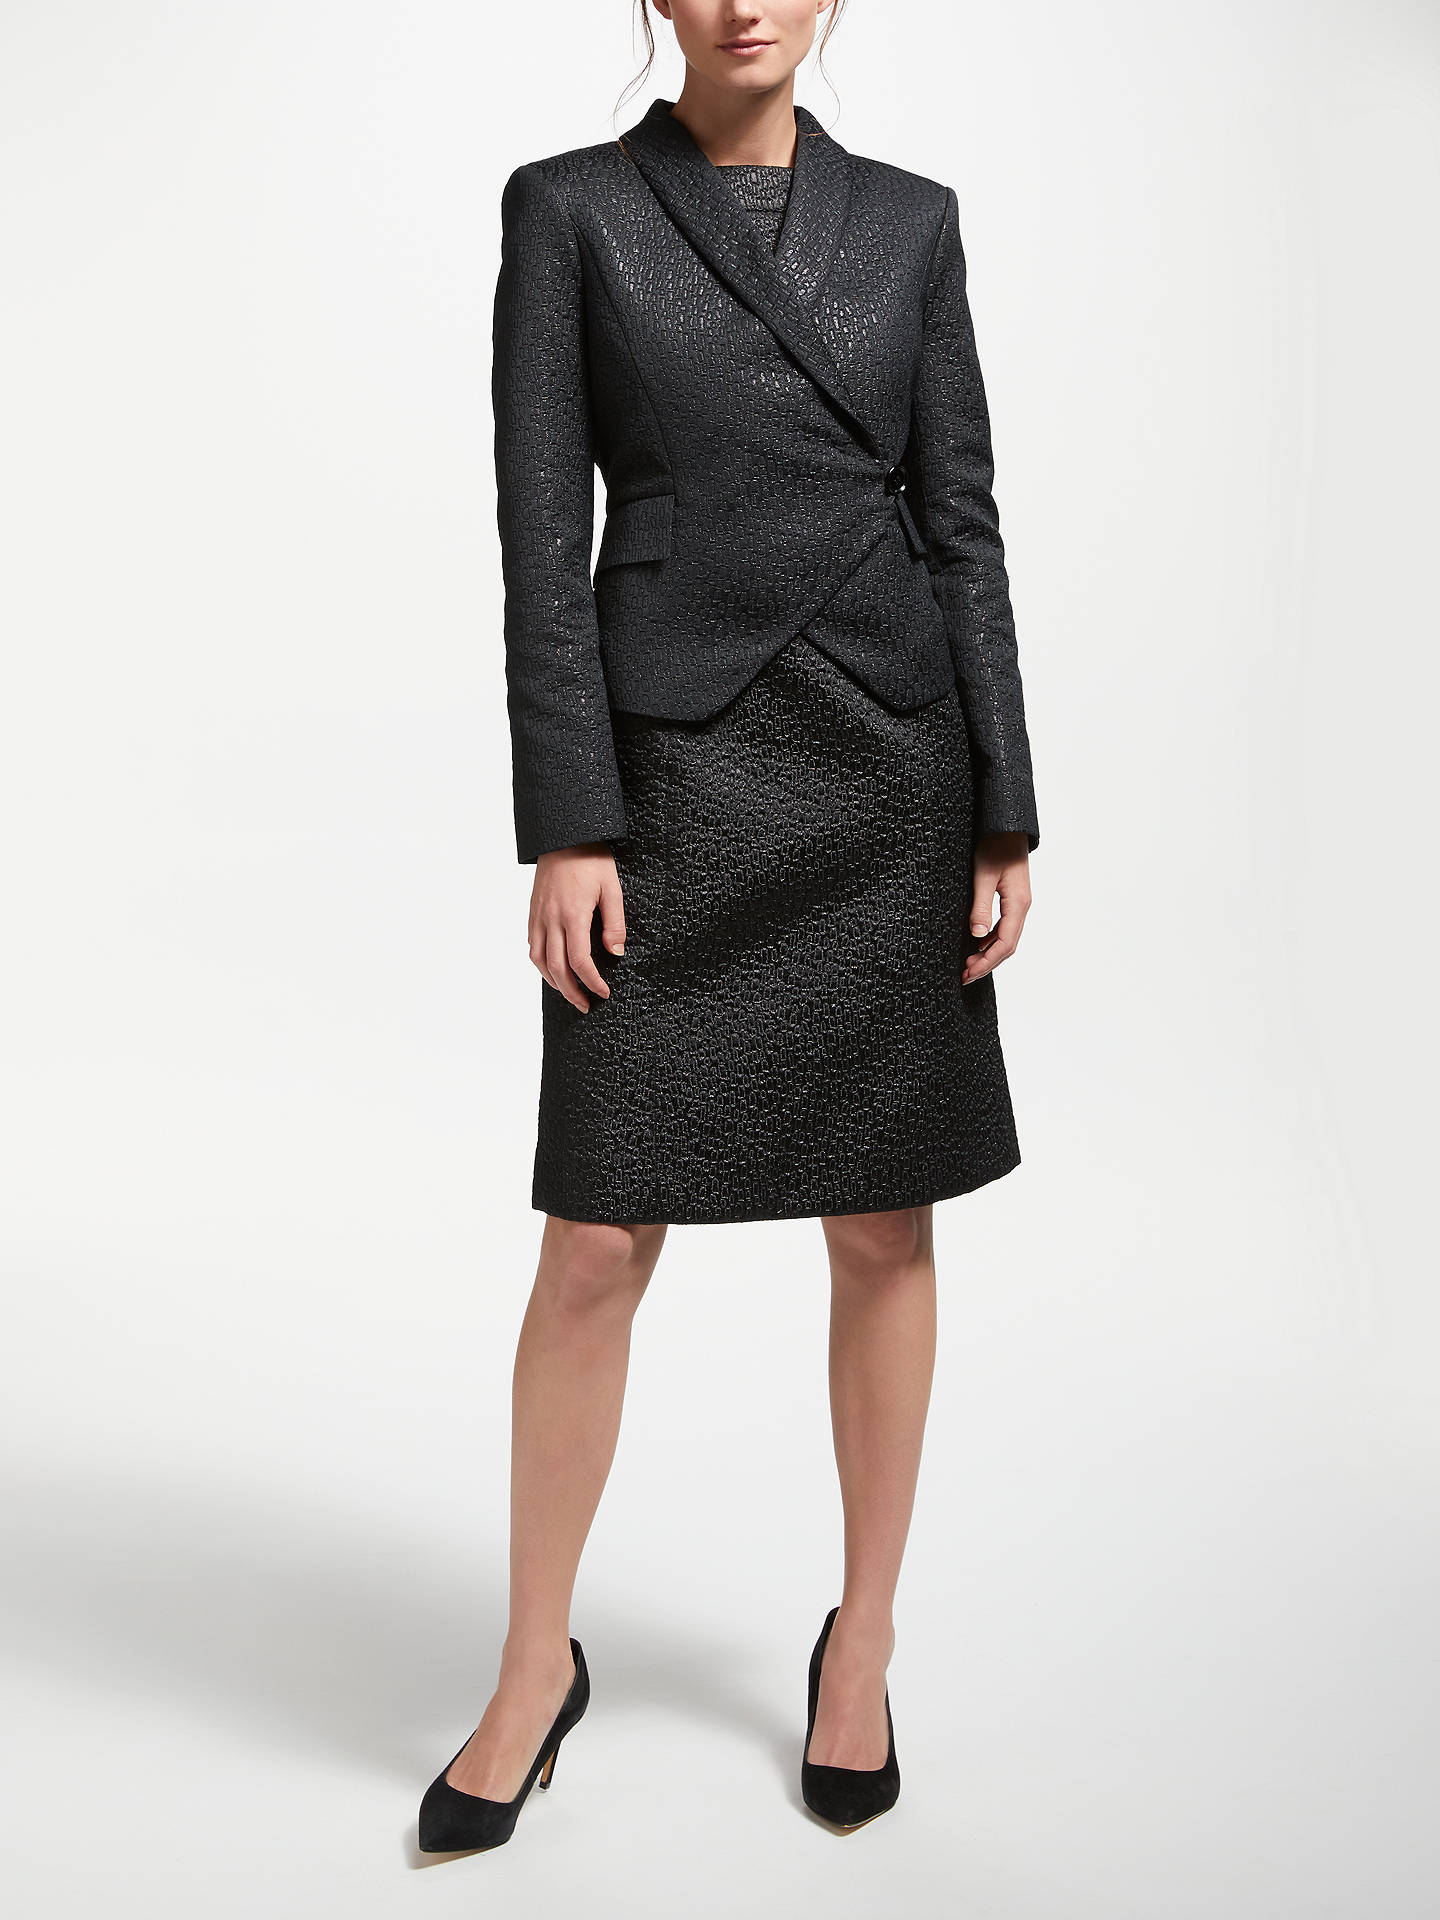 Buy Bruce by Bruce Oldfield Jacquard Wrap Jacket, Black, 8 Online at johnlewis.com